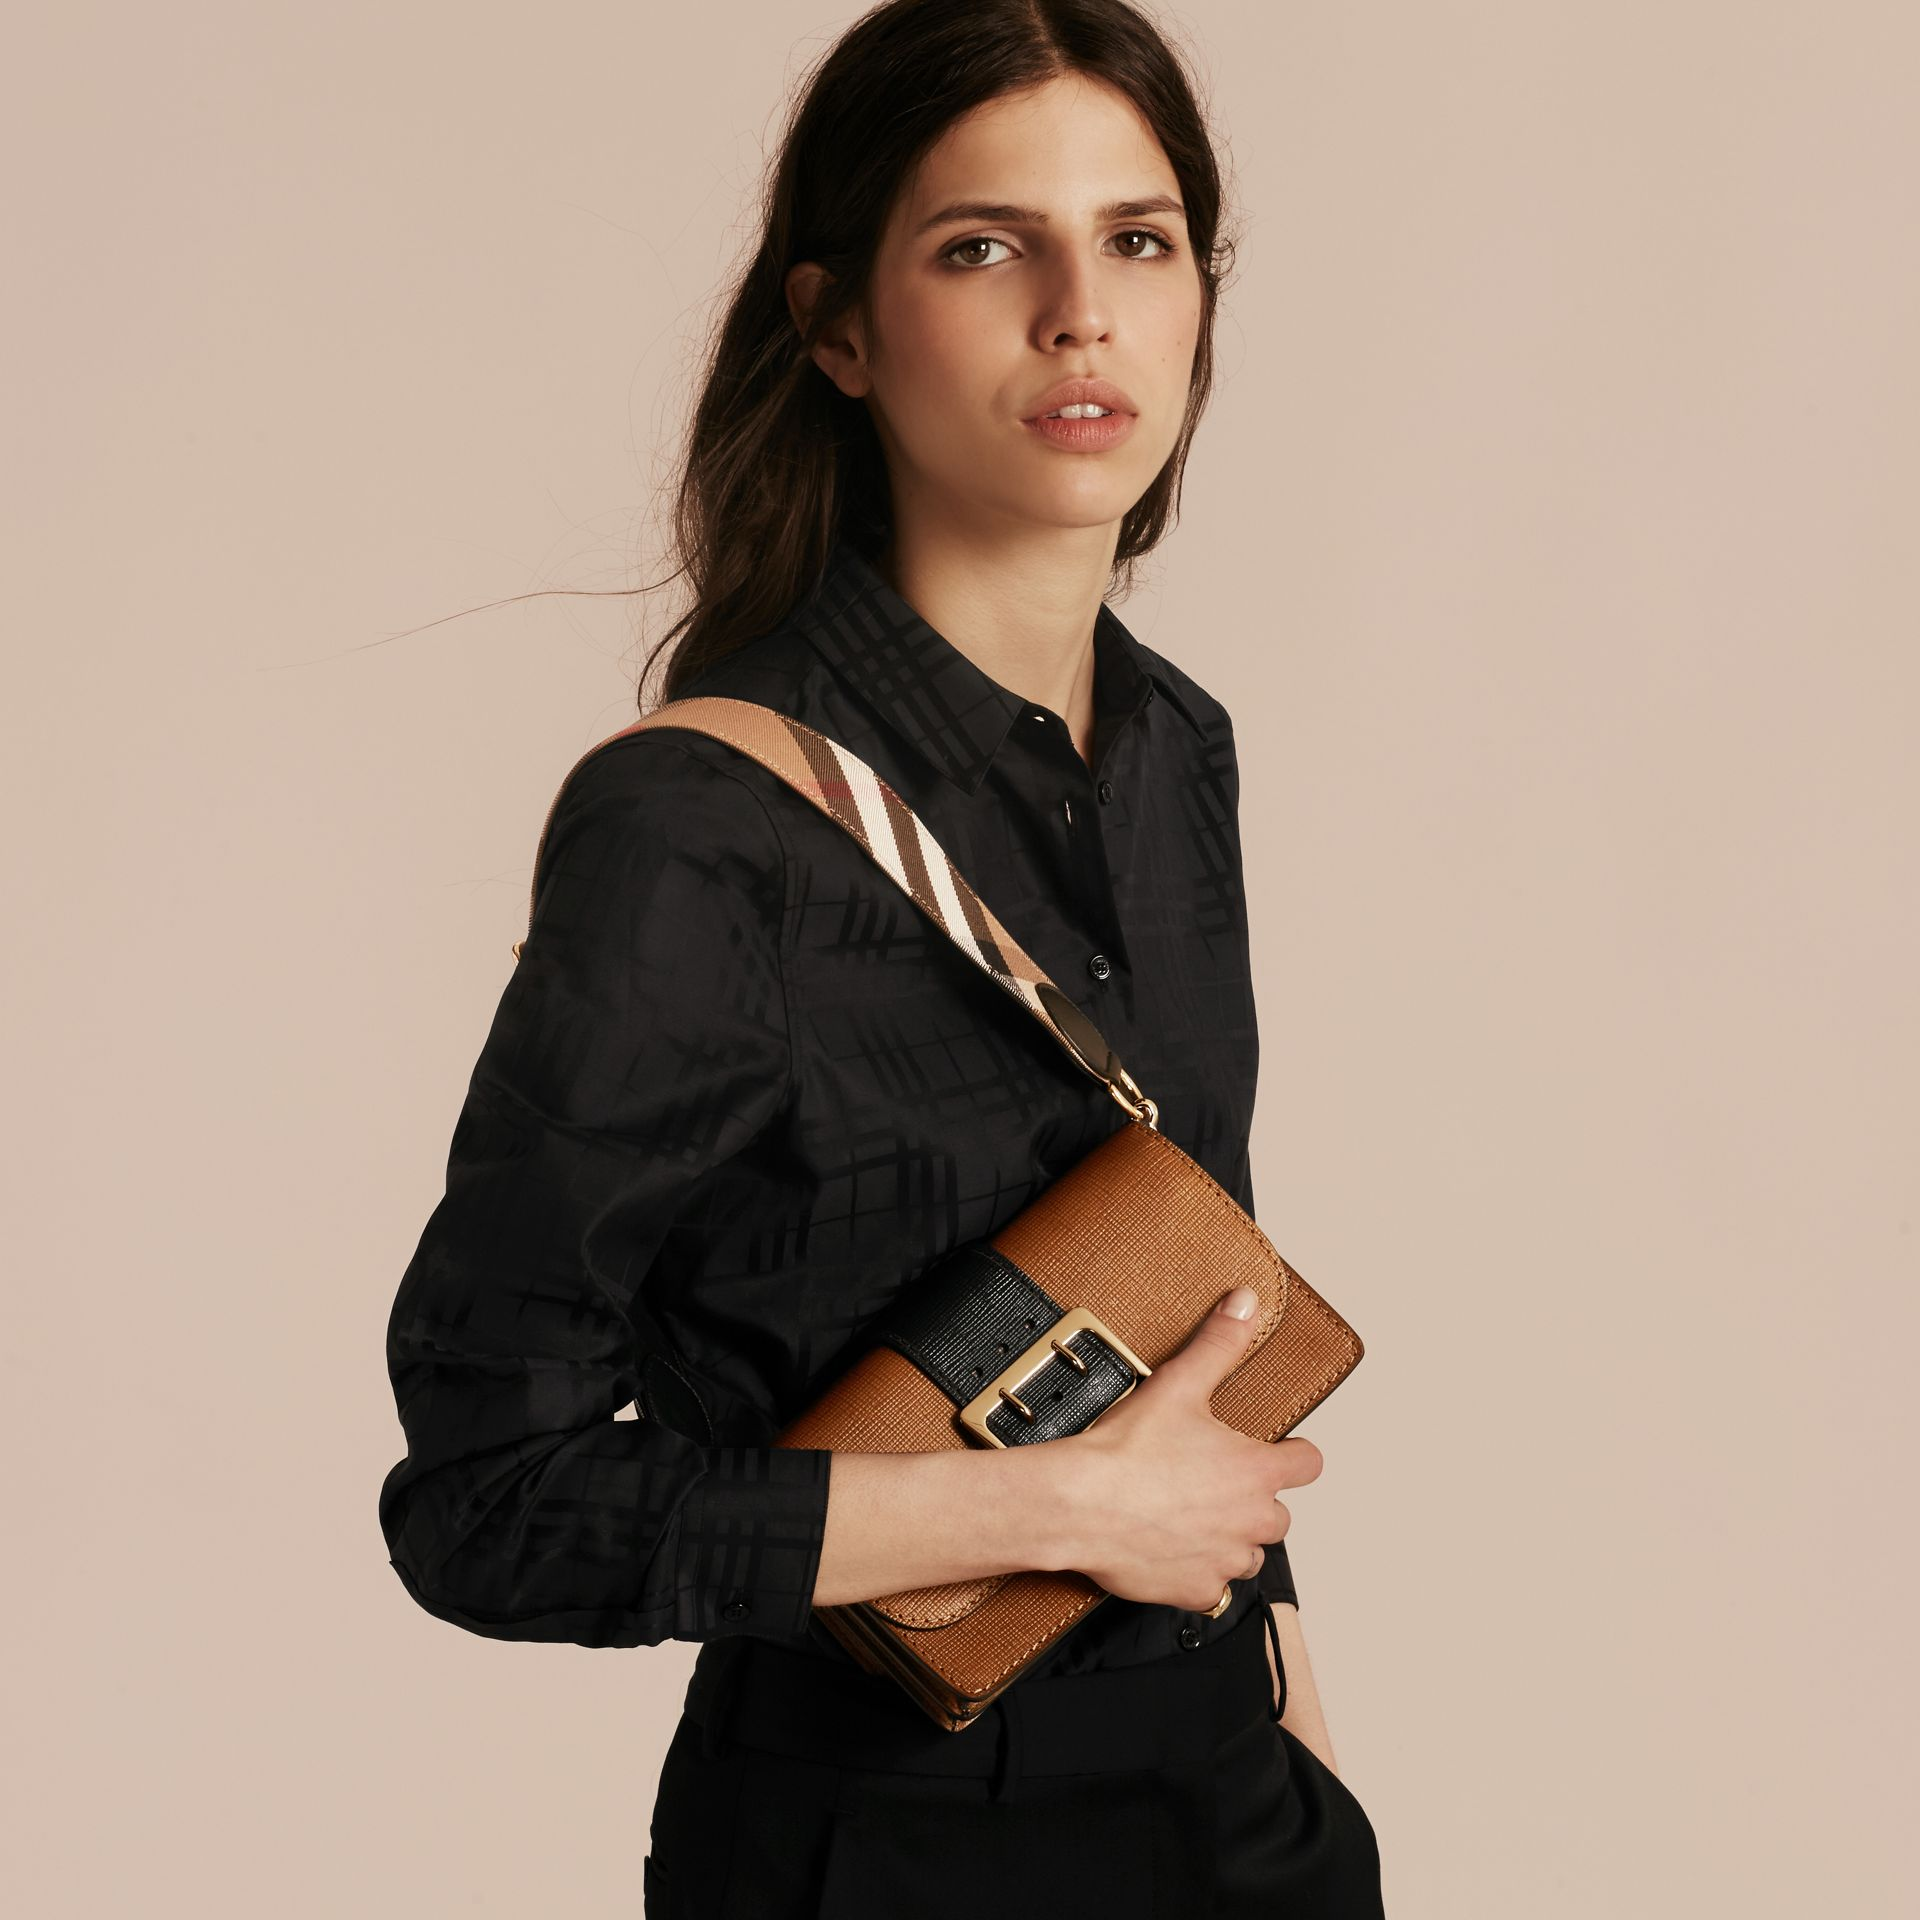 Tan/black The Medium Buckle Bag in Textured Leather Tan/black - gallery image 4